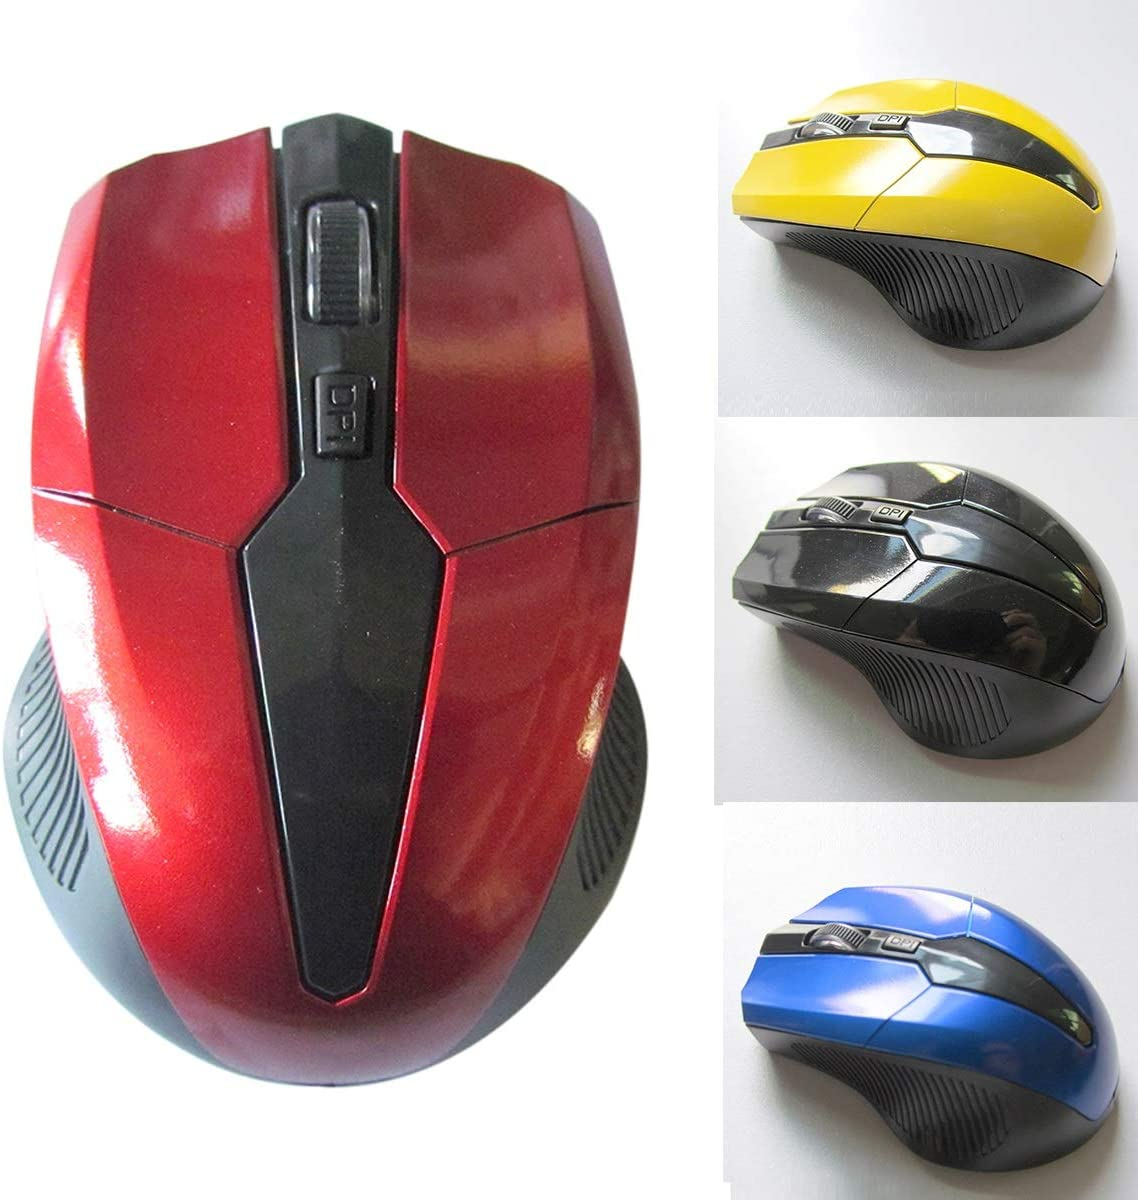 Yesbaby 2.4Ghz 800-1200-1600 DPI Mini Wireless Optical Gaming Mouse Mice/& USB Receiver for PC Laptop Color : Black